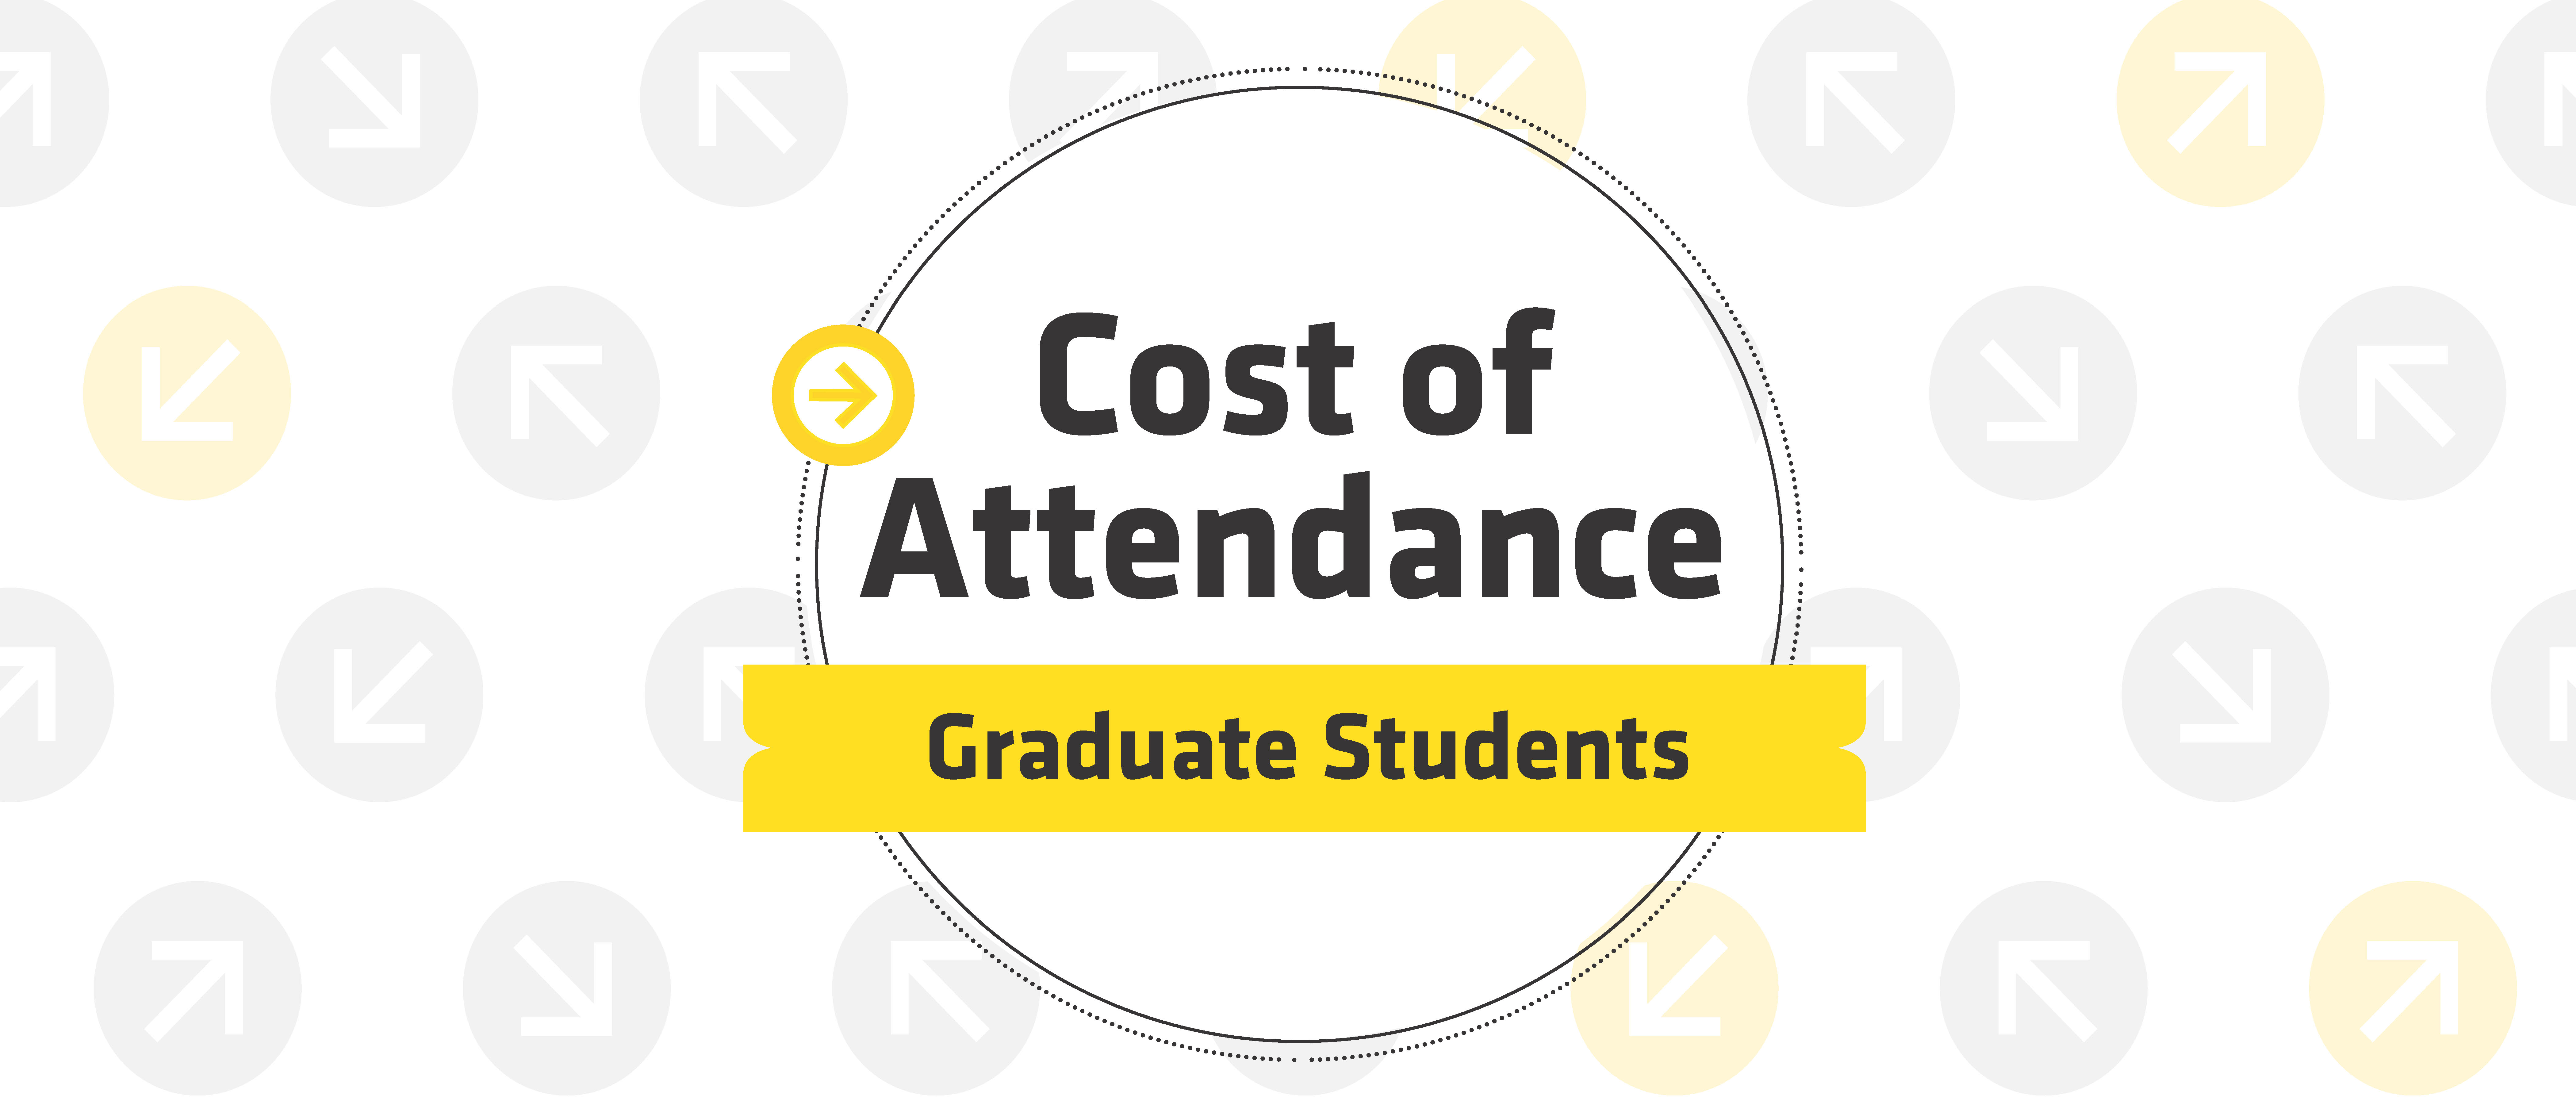 Cost of Attendance - Graduate Students with circles and arrows